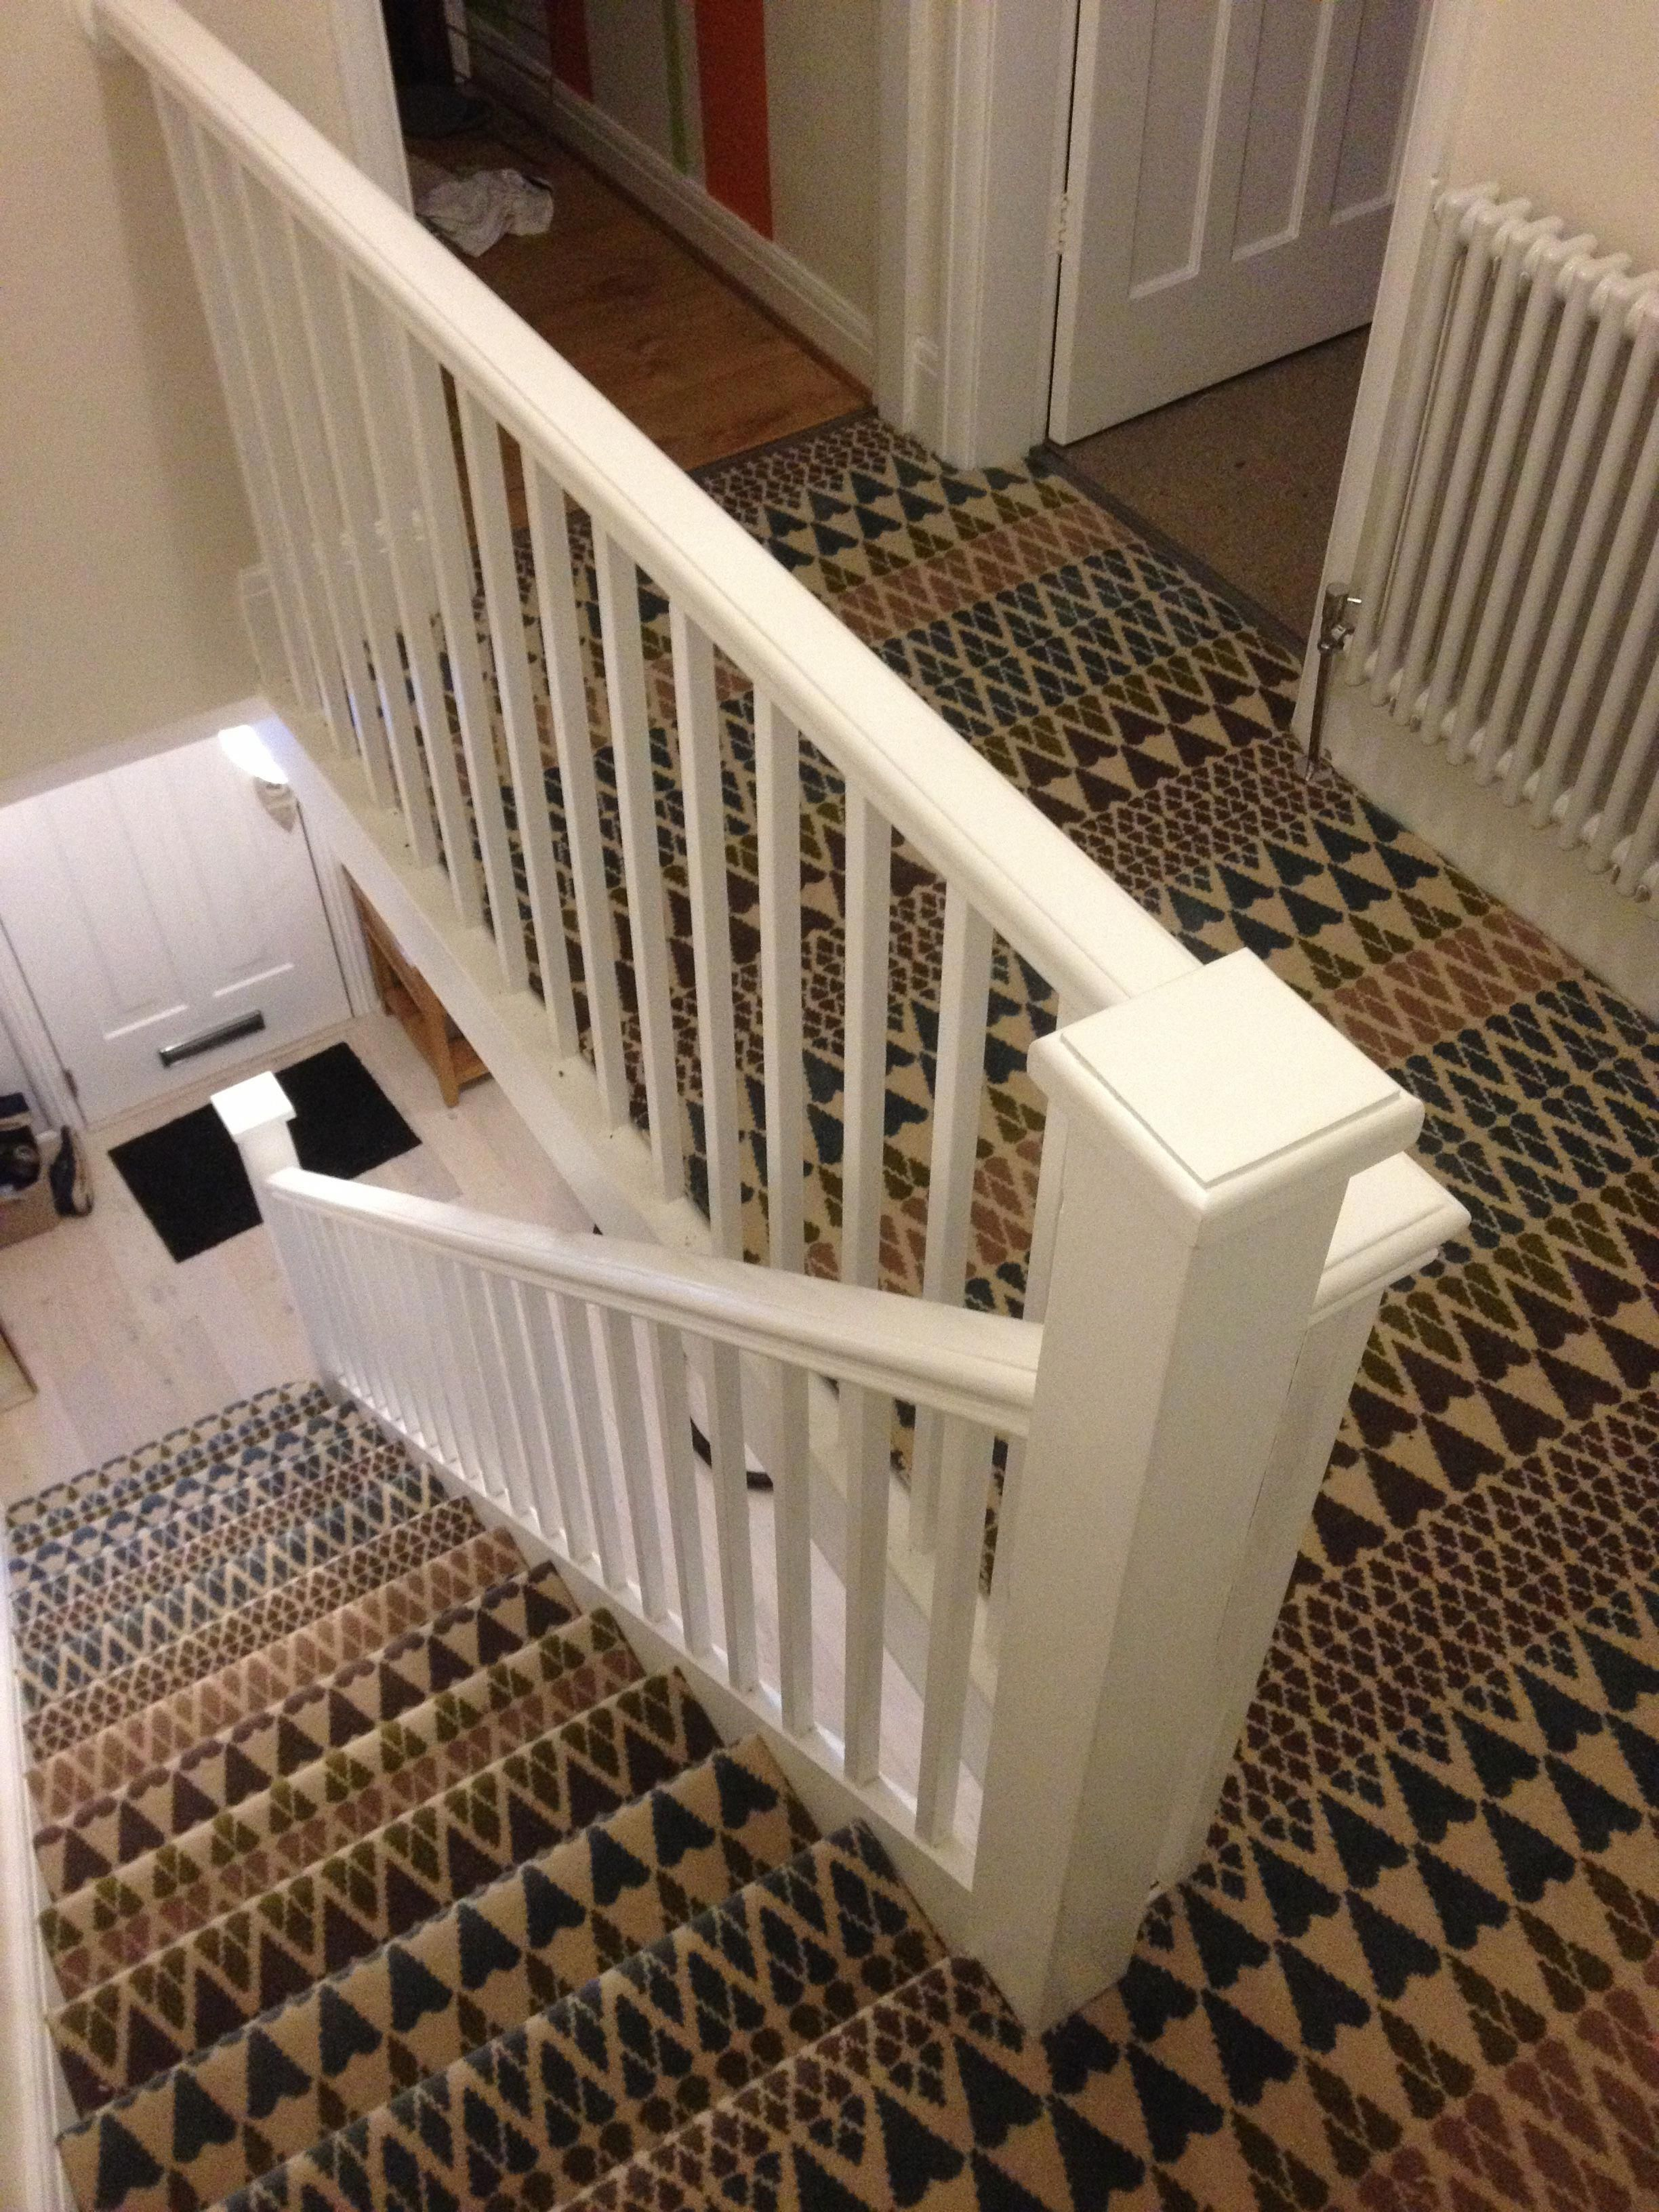 Carpet Runners For Stairs Lowes In 2020 Bedroom Carpet Colors   Carpet For Stairs Lowes   Hard Wearing   Traditional   Dean Wrap Around Treads   Pattern   Textured